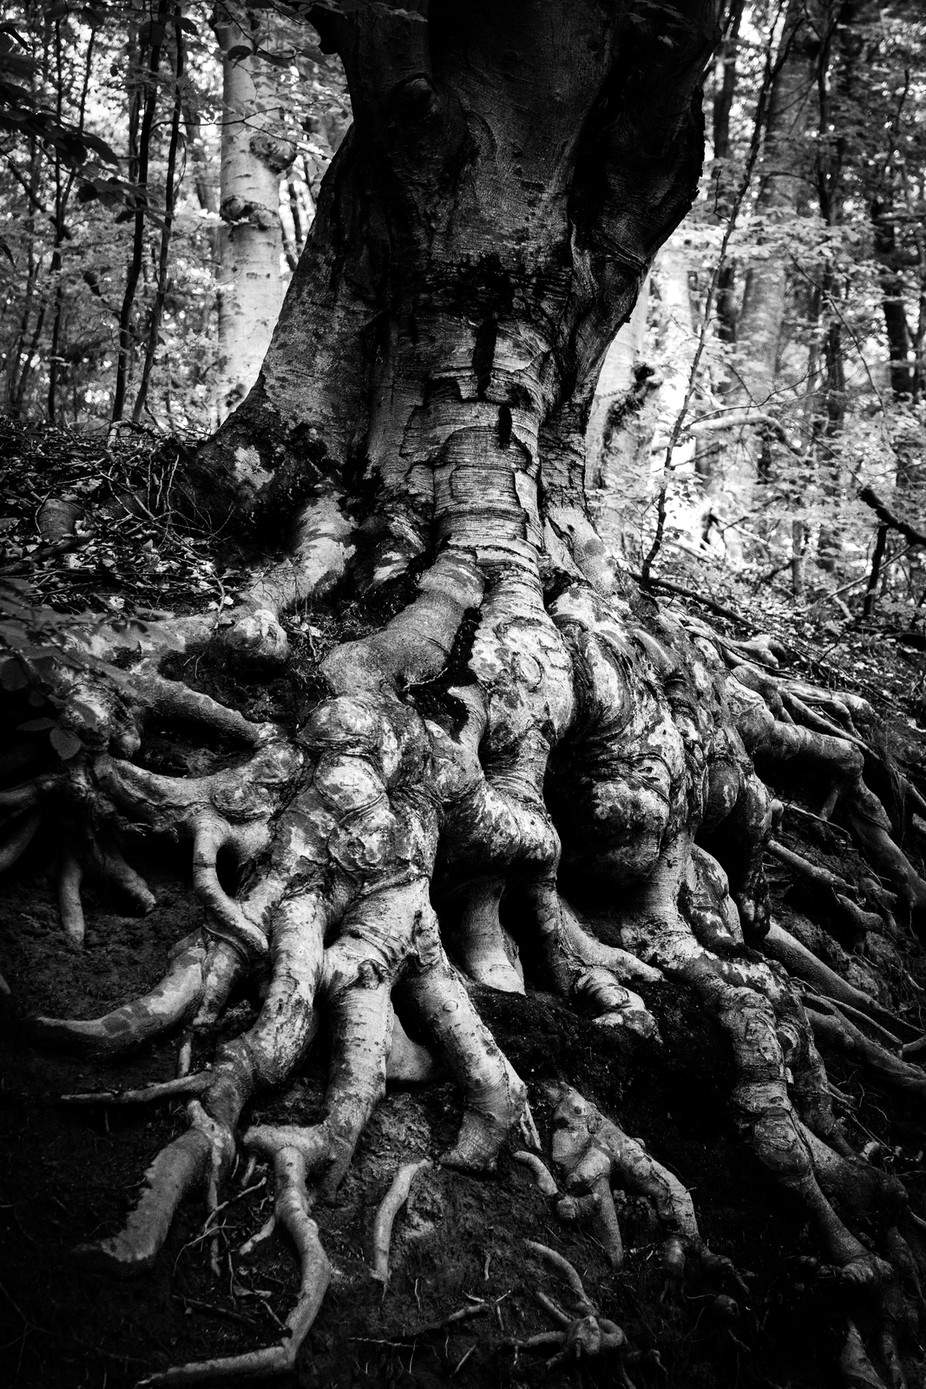 Old Tree by whiteshipdesign - Our World In Black And White Photo Contest